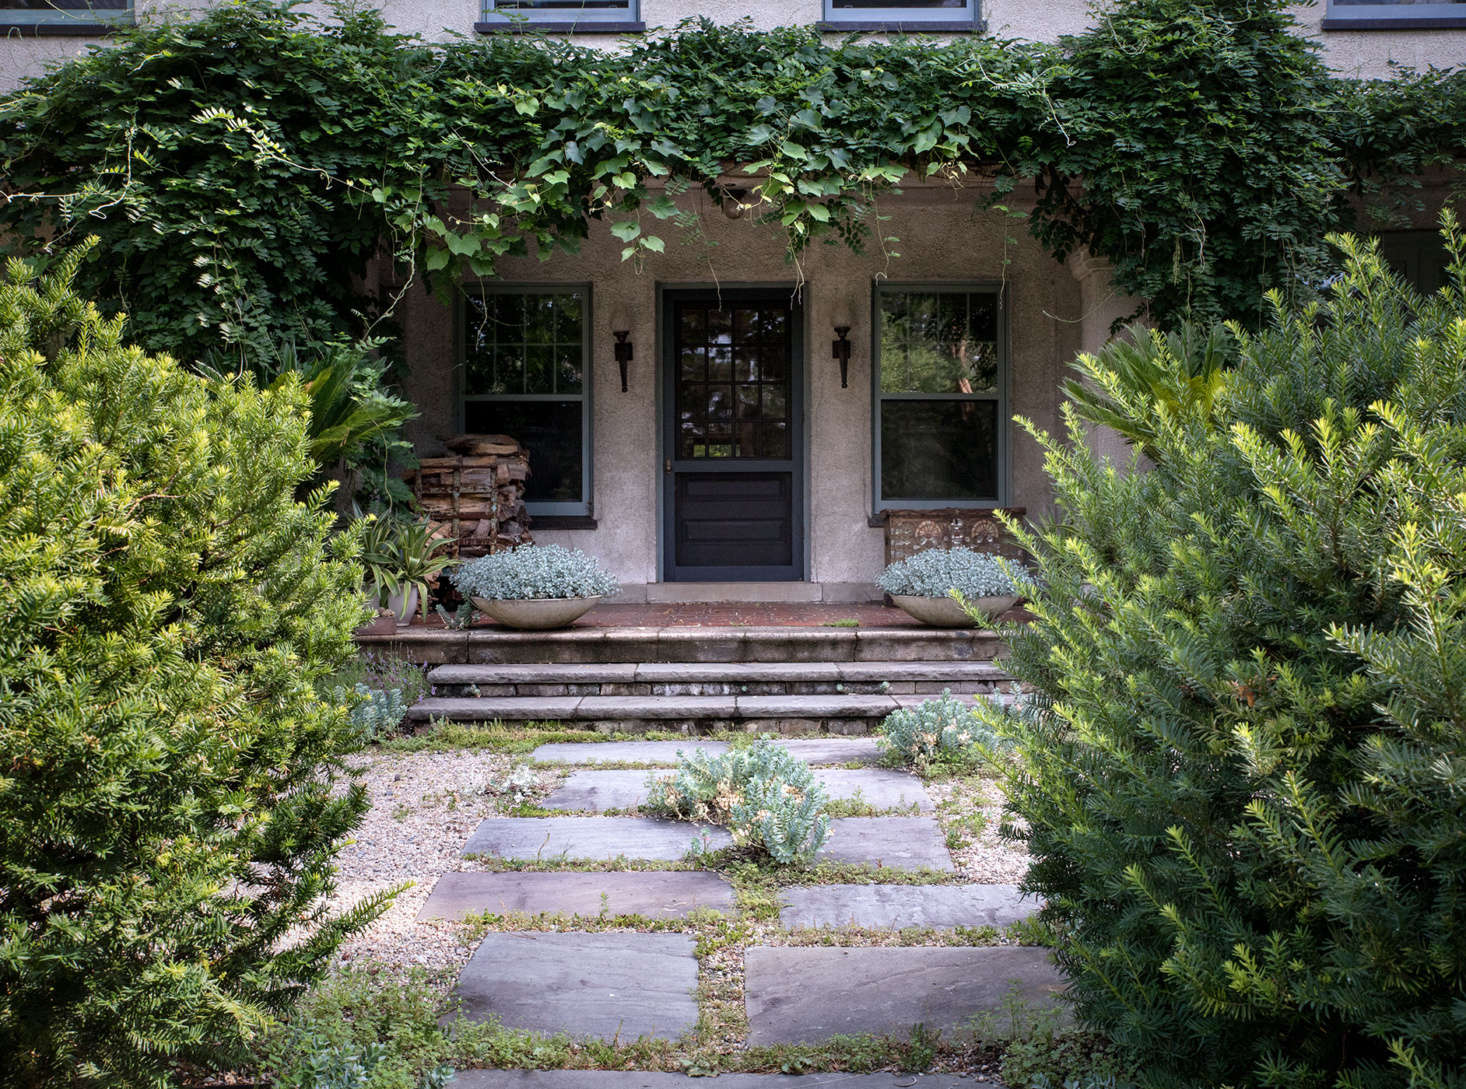 Framing a hand-hewn stone path, loosely shorn yews, as well as untamed vines and self-sewn plantings, conjure an atmosphere of old-world charm.